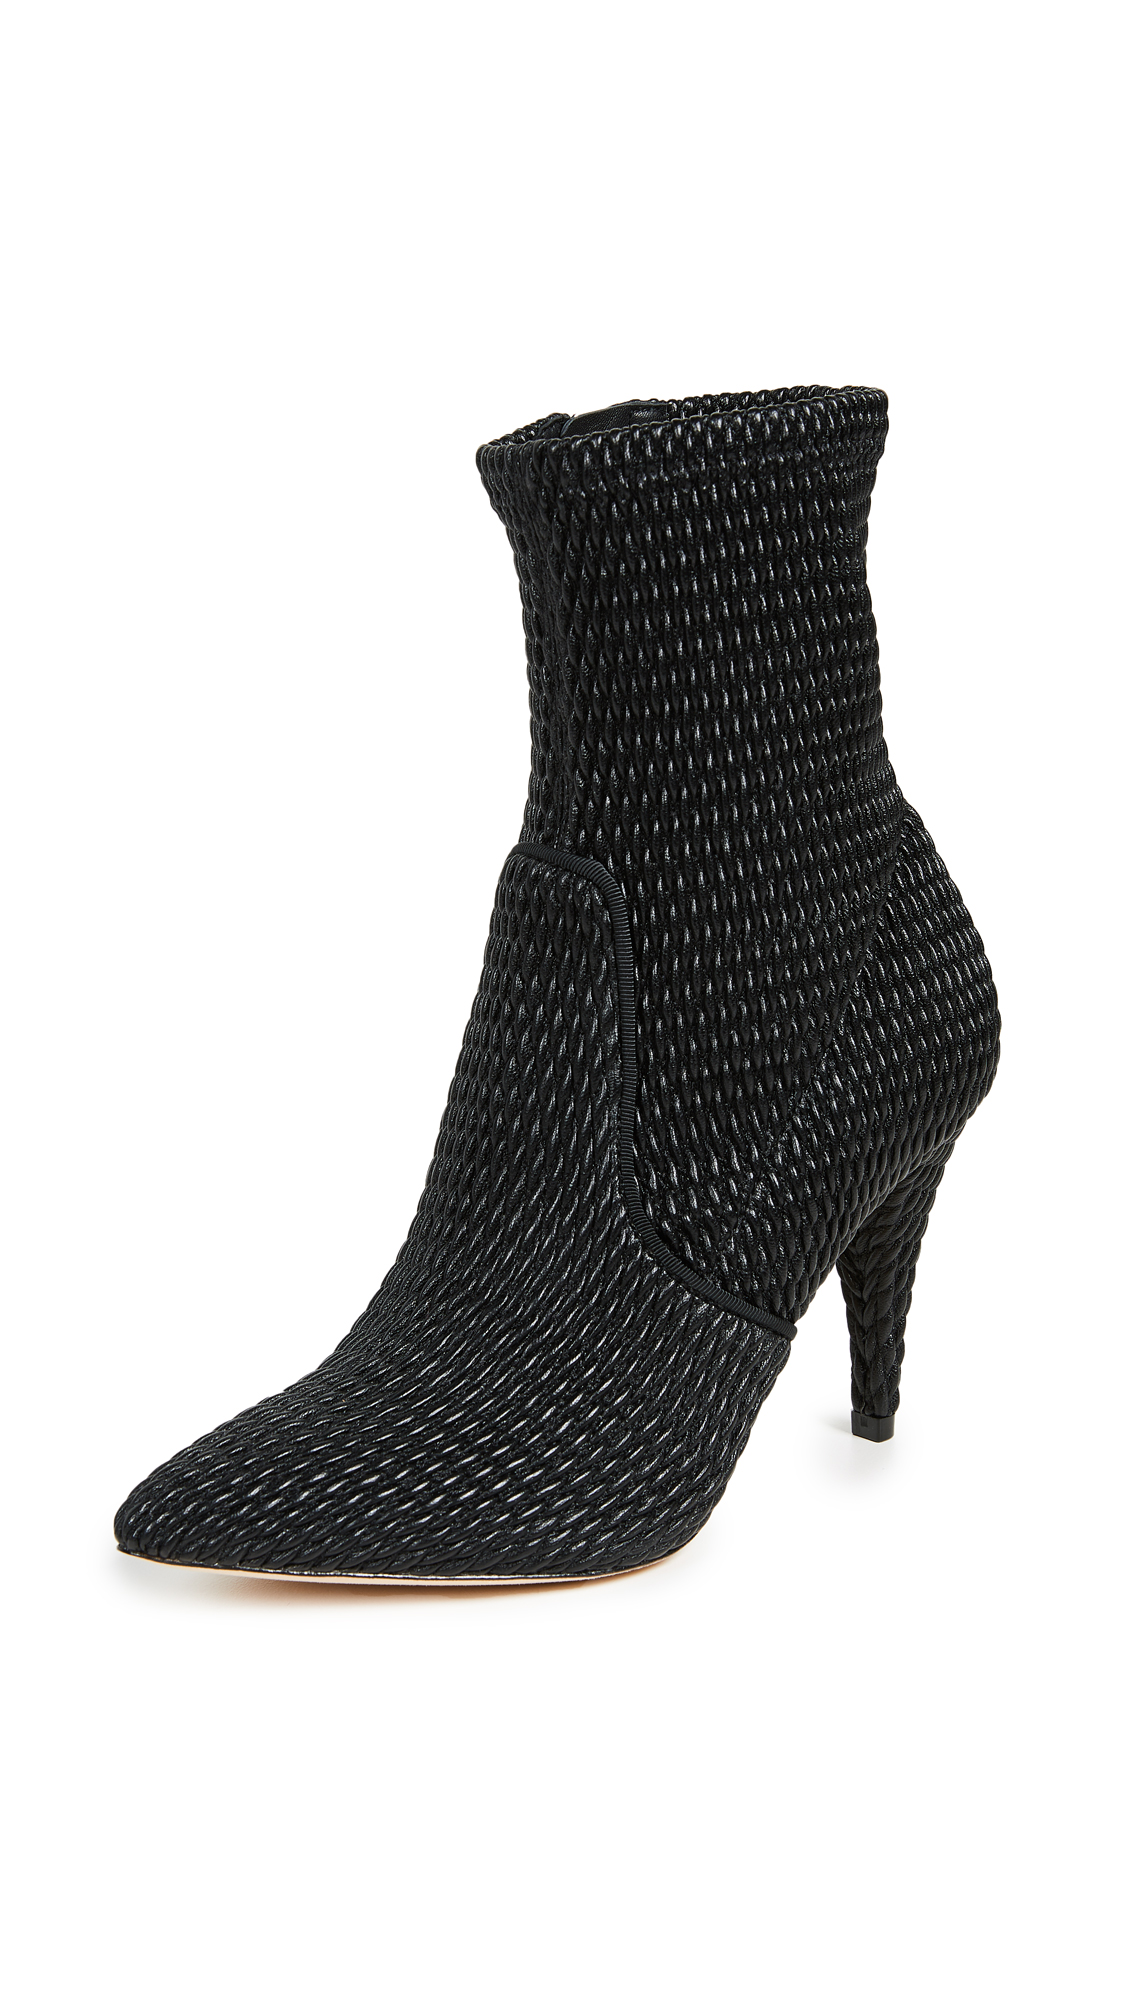 alice + olivia Hedde Stretch Pleather Booties - Black